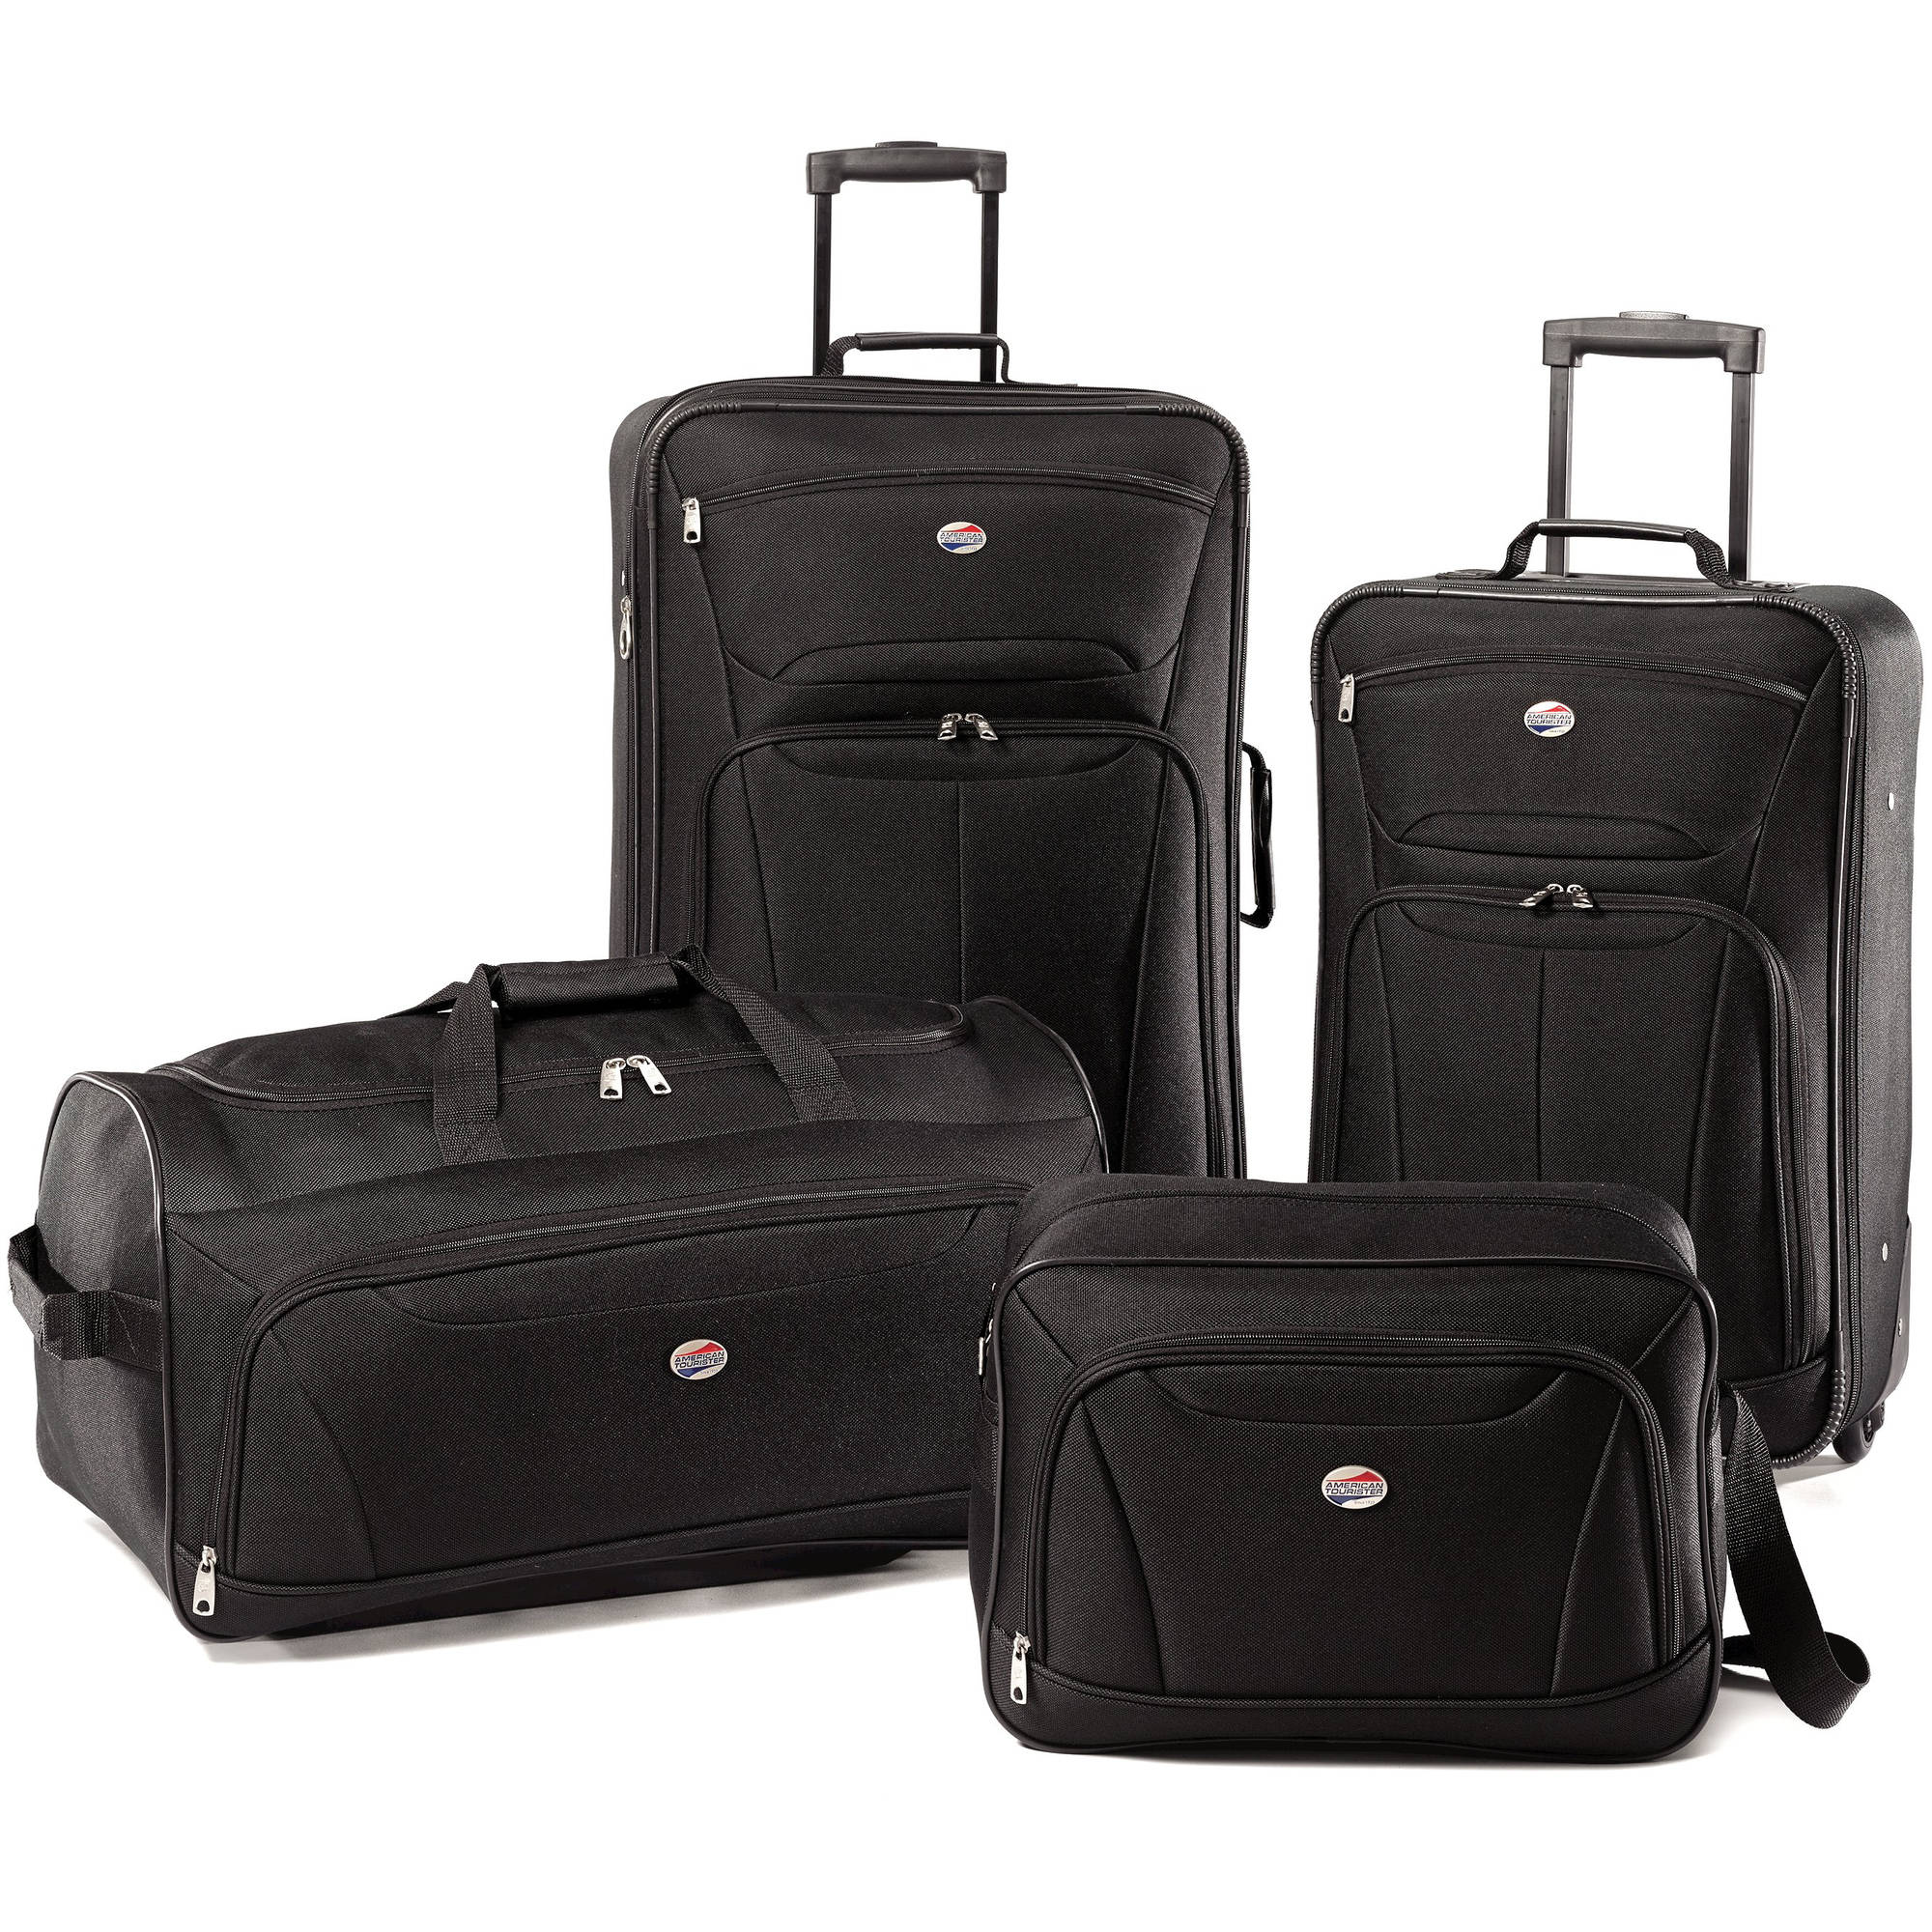 American Tourister Fieldbrook Collection 4-Piece Luggage Set